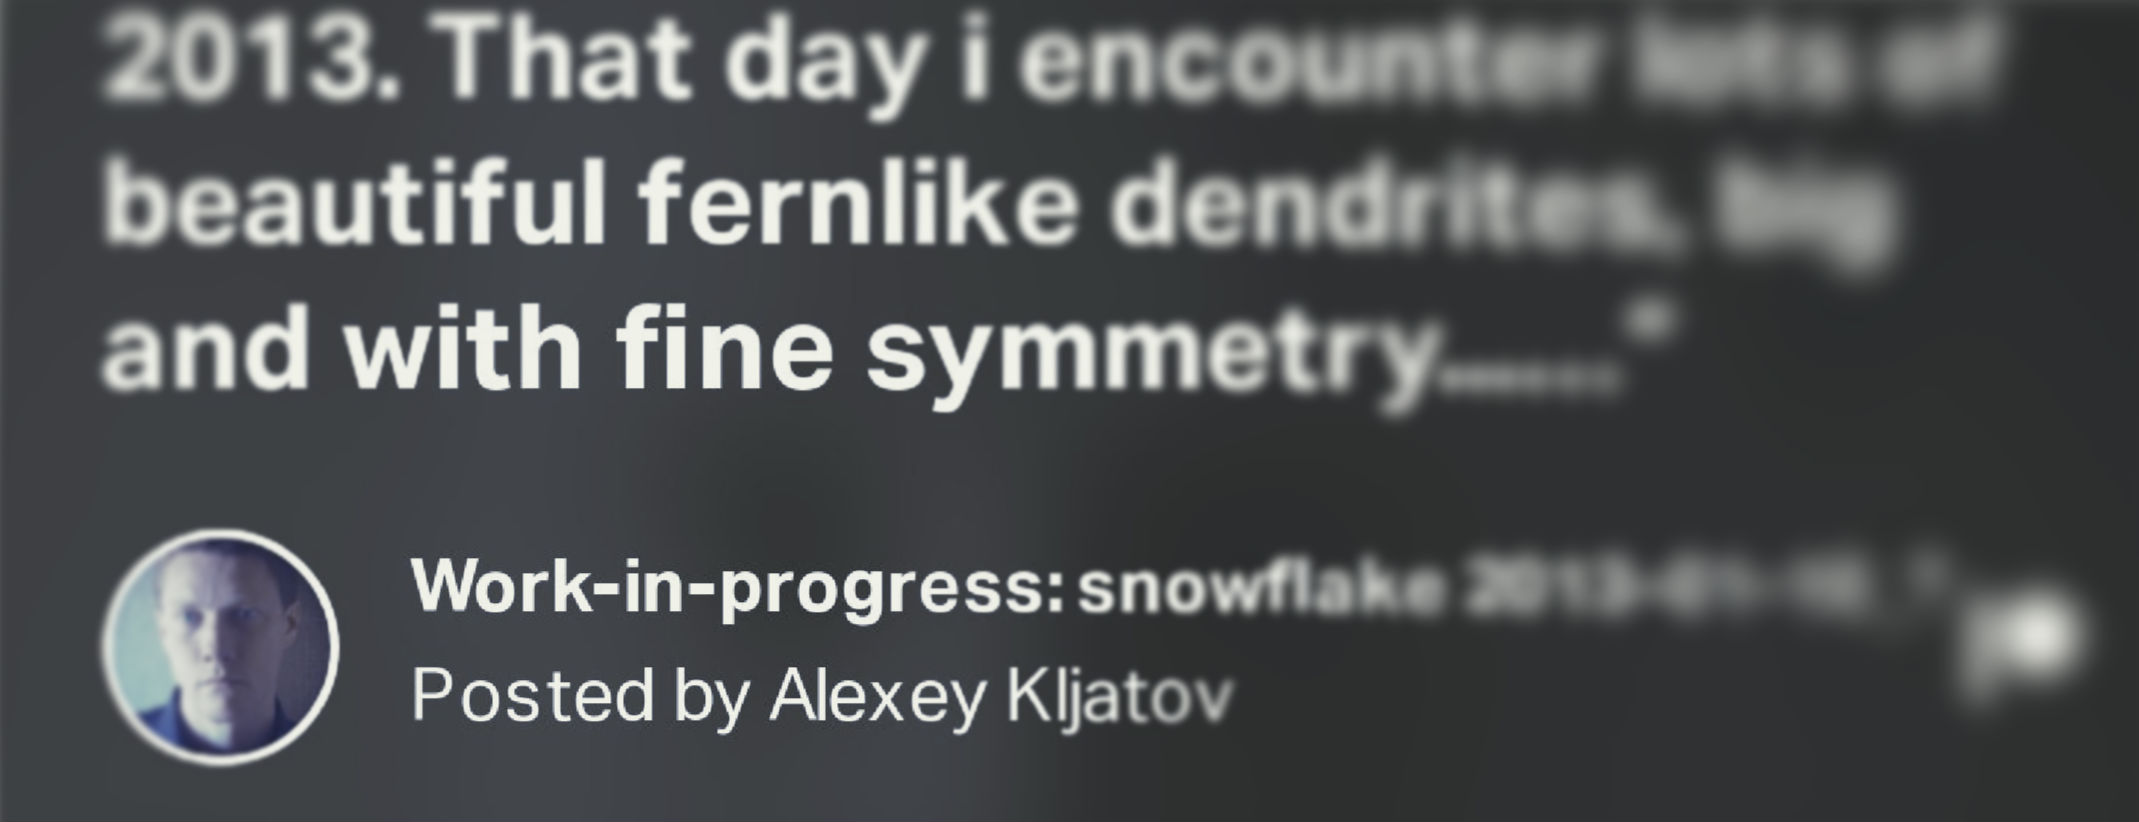 Post about processing new snowflake: behind the scenes, early preview, work in progress